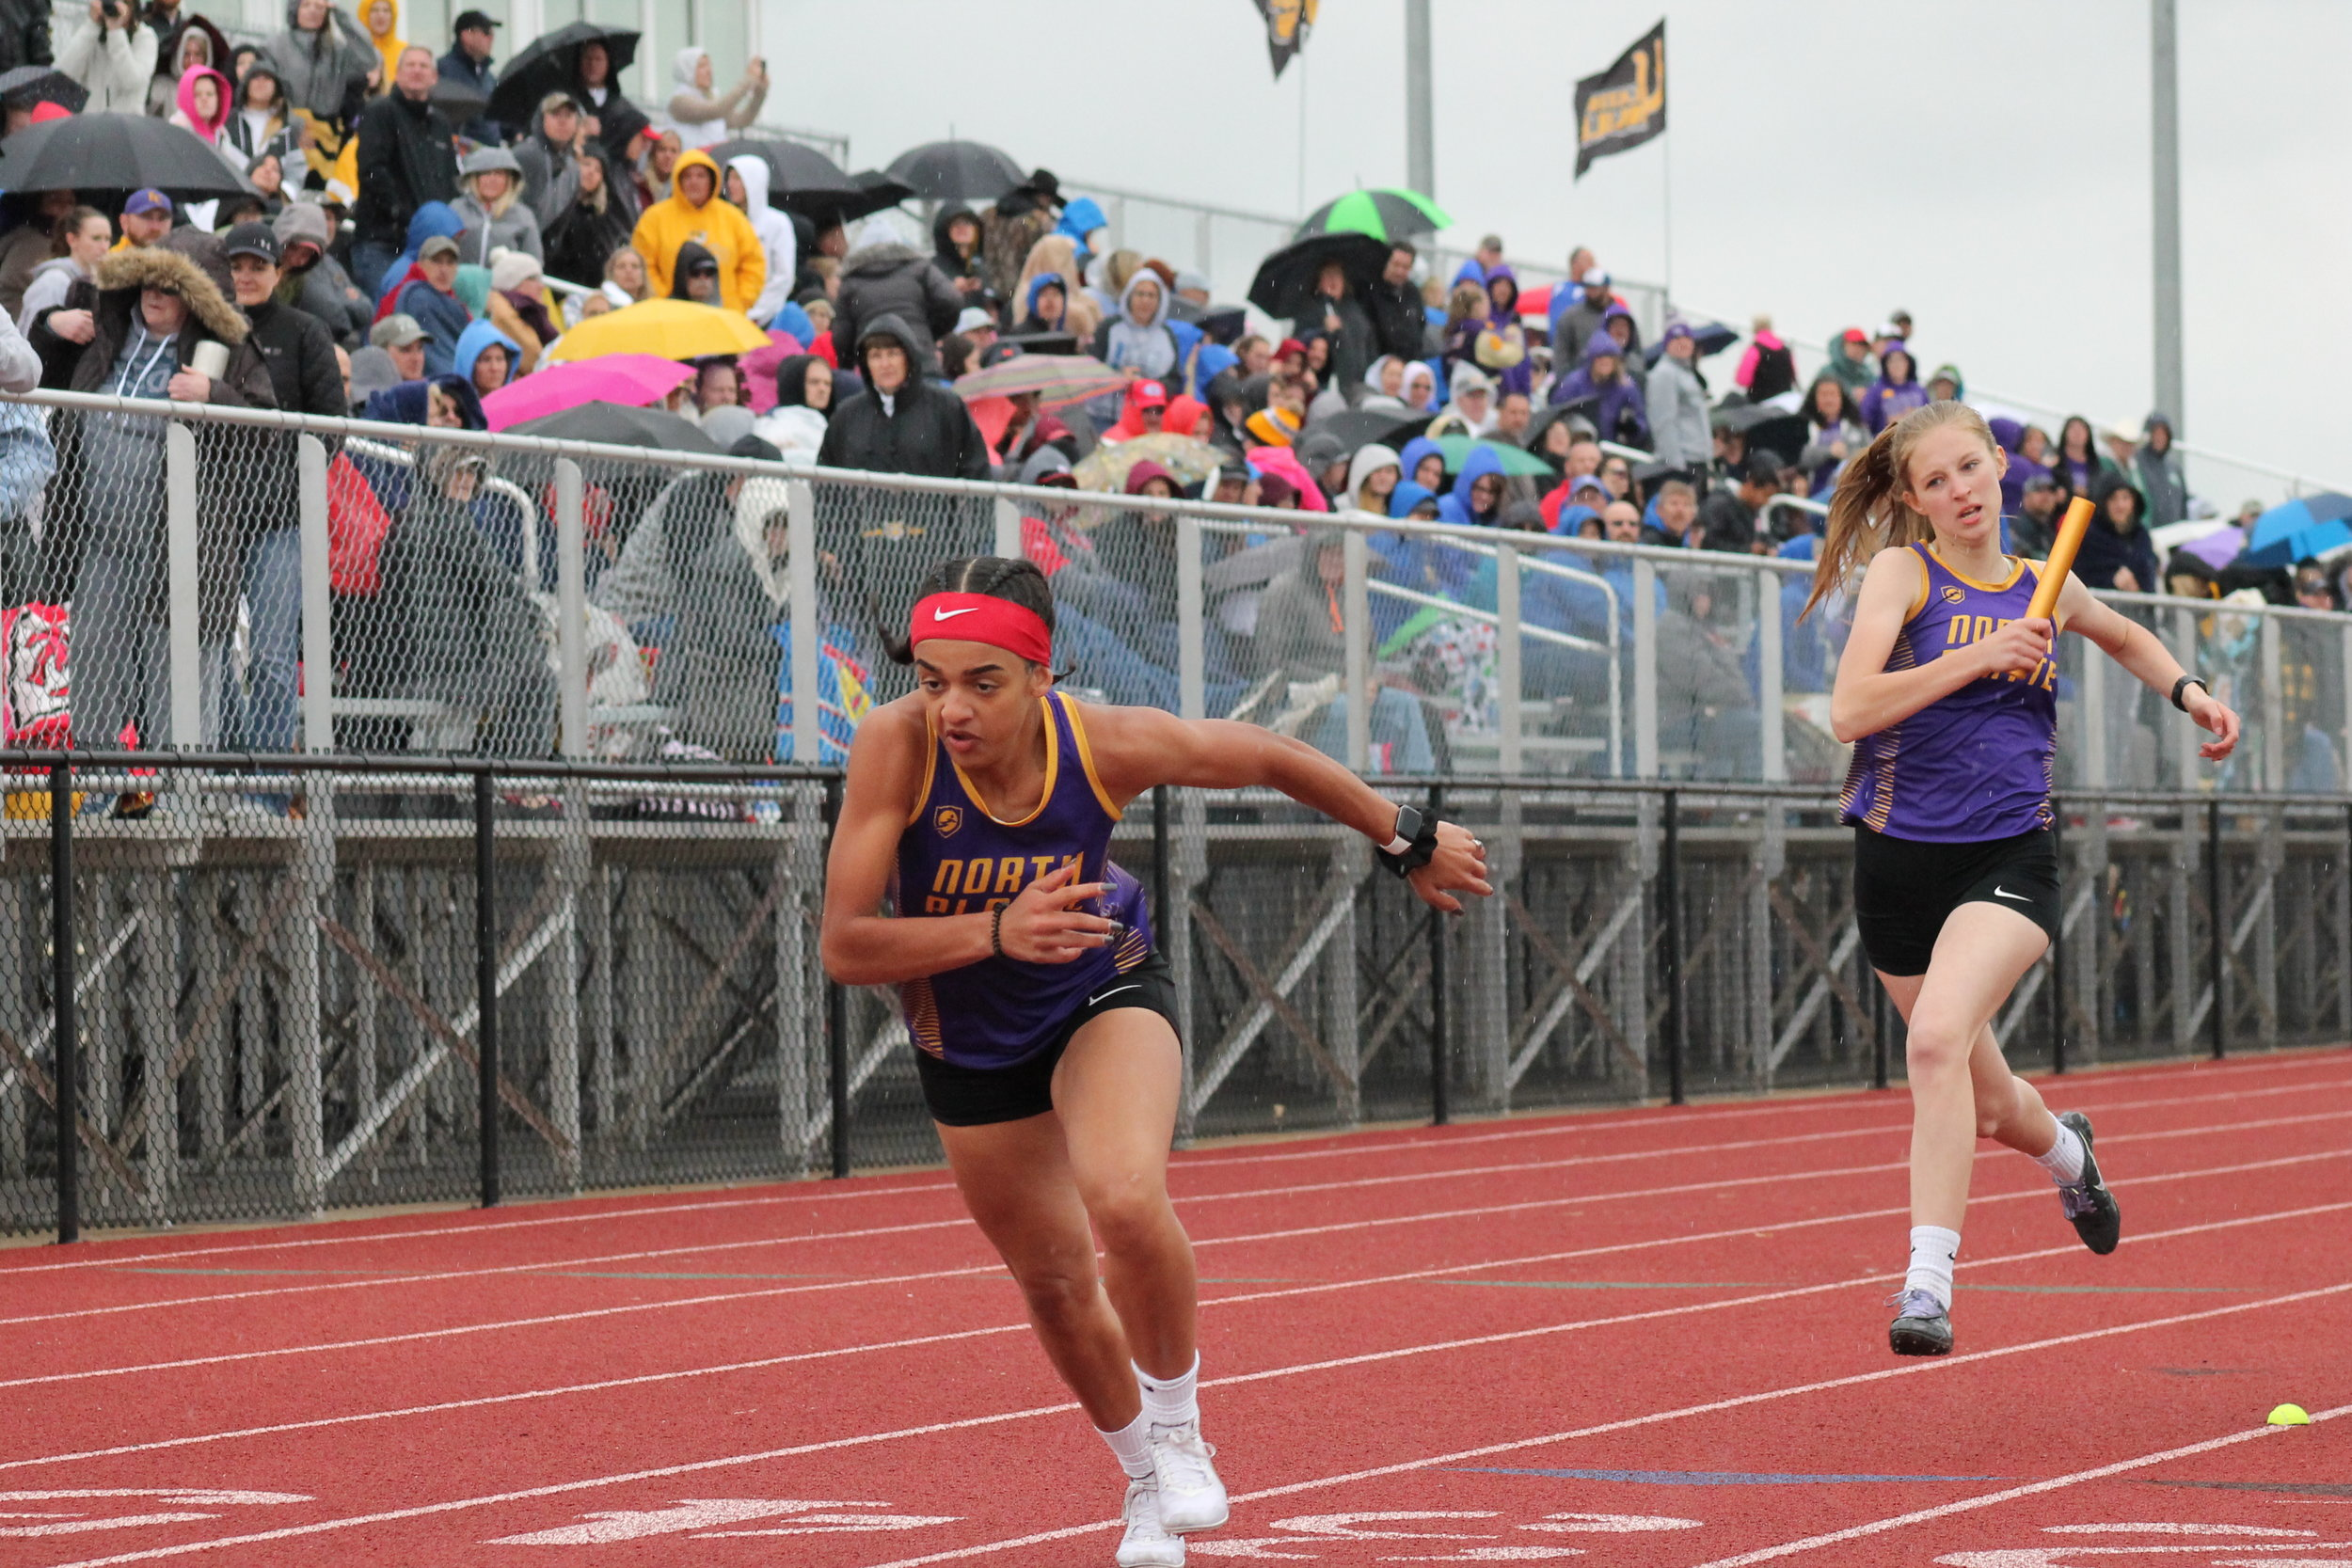 BREANNA CHEADLE/Special to the Citizen North Platte's Maddie O'Neill, left, awaits the baton from Madi Debord in the 4x200-meter relay during the Class 2 Sectional 4 meet held on Saturday, May 11 at Lathrop High School.